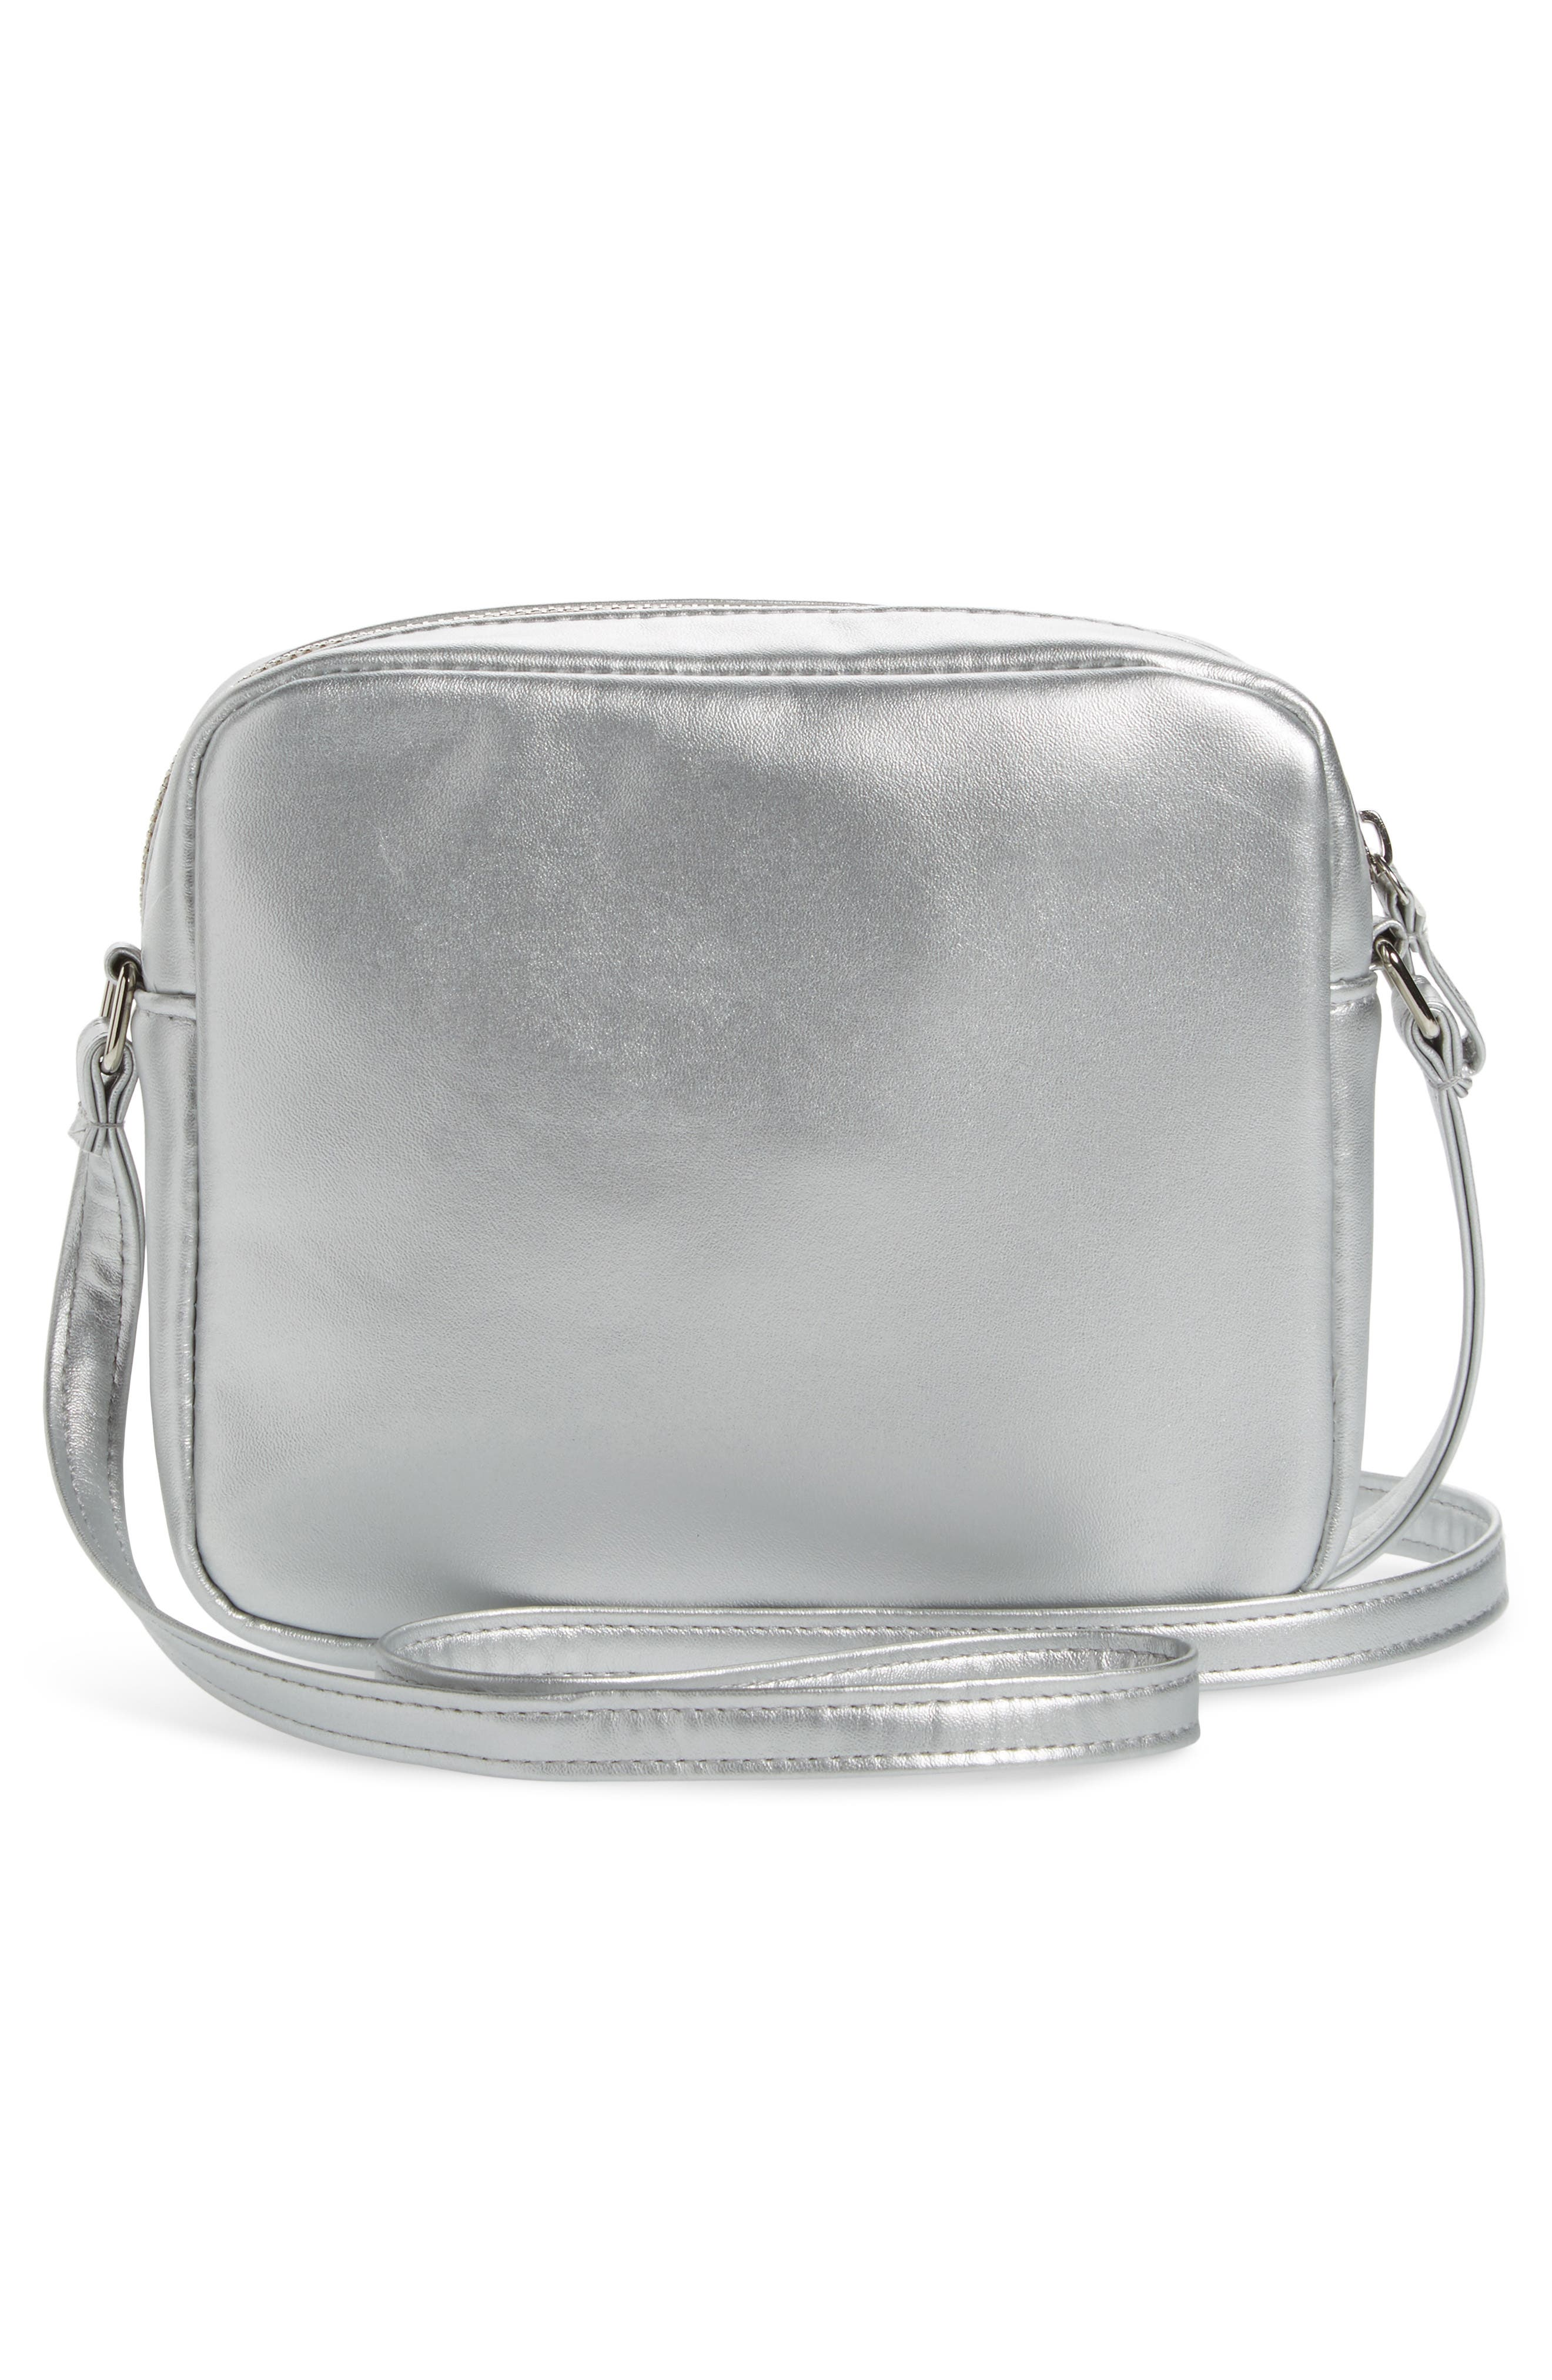 Capelli LED Light-Up Rainbow Faux Leather Crossbody Bag,                             Alternate thumbnail 2, color,                             Silver Combo